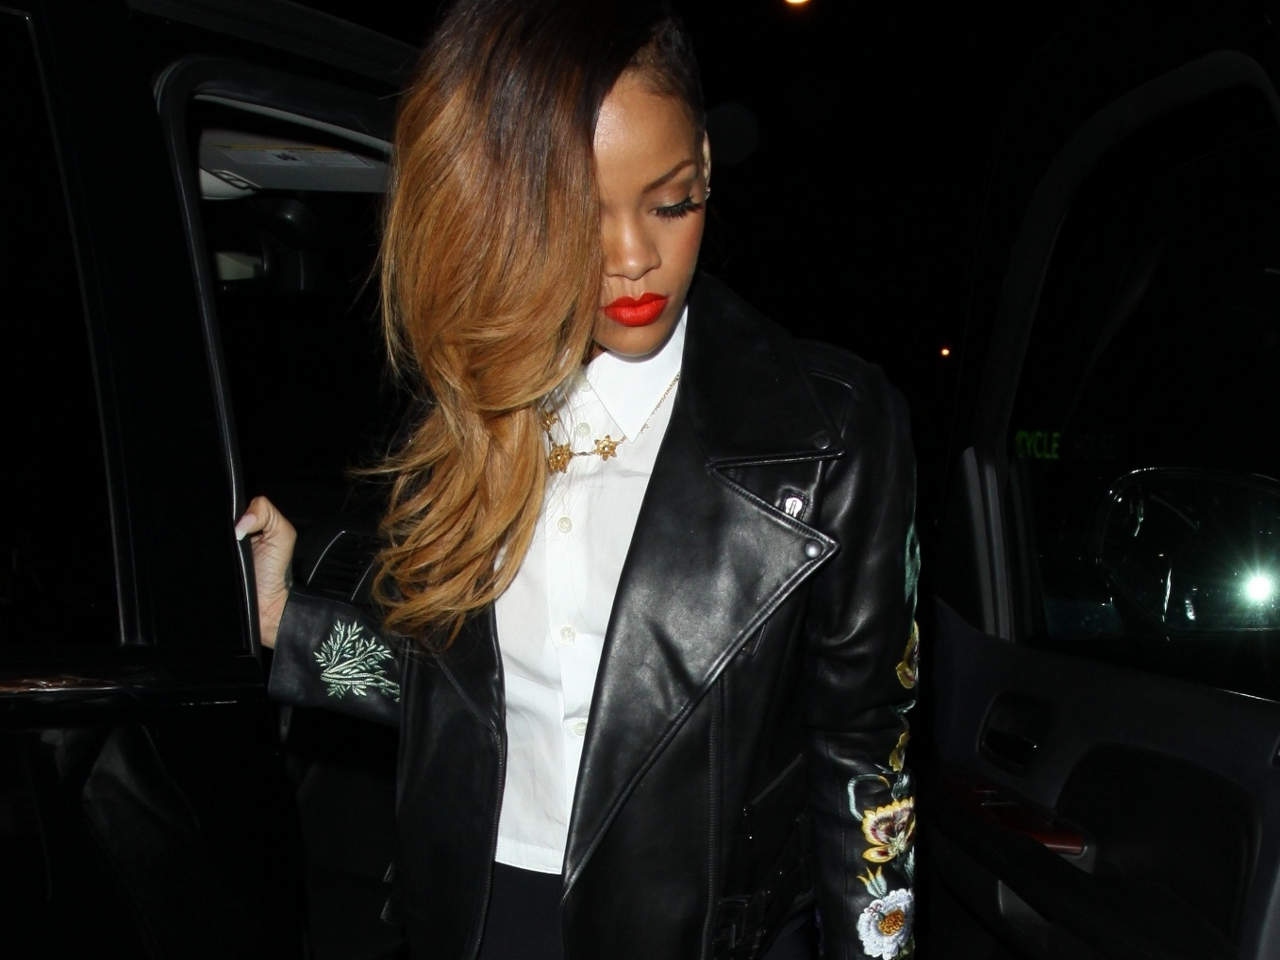 rihanna images icons wallpapers and photos on fanpop